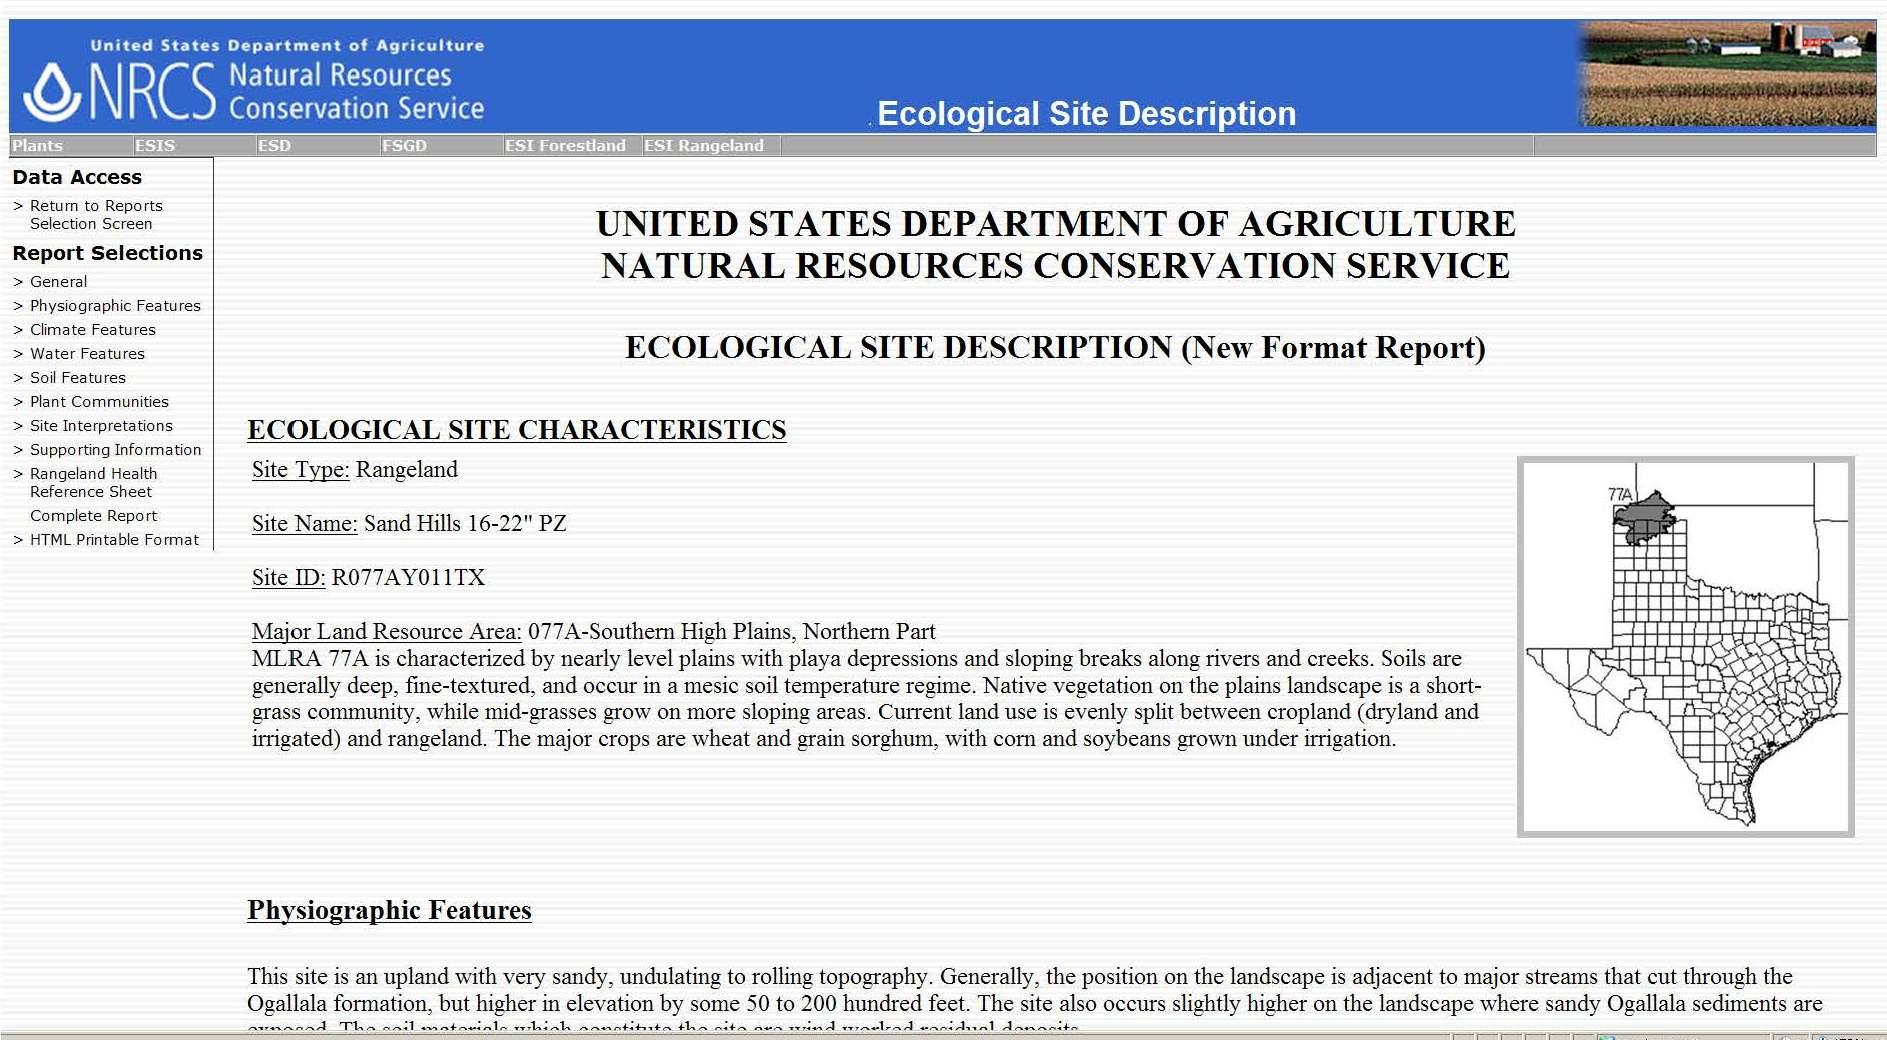 Ecological Site Description Report